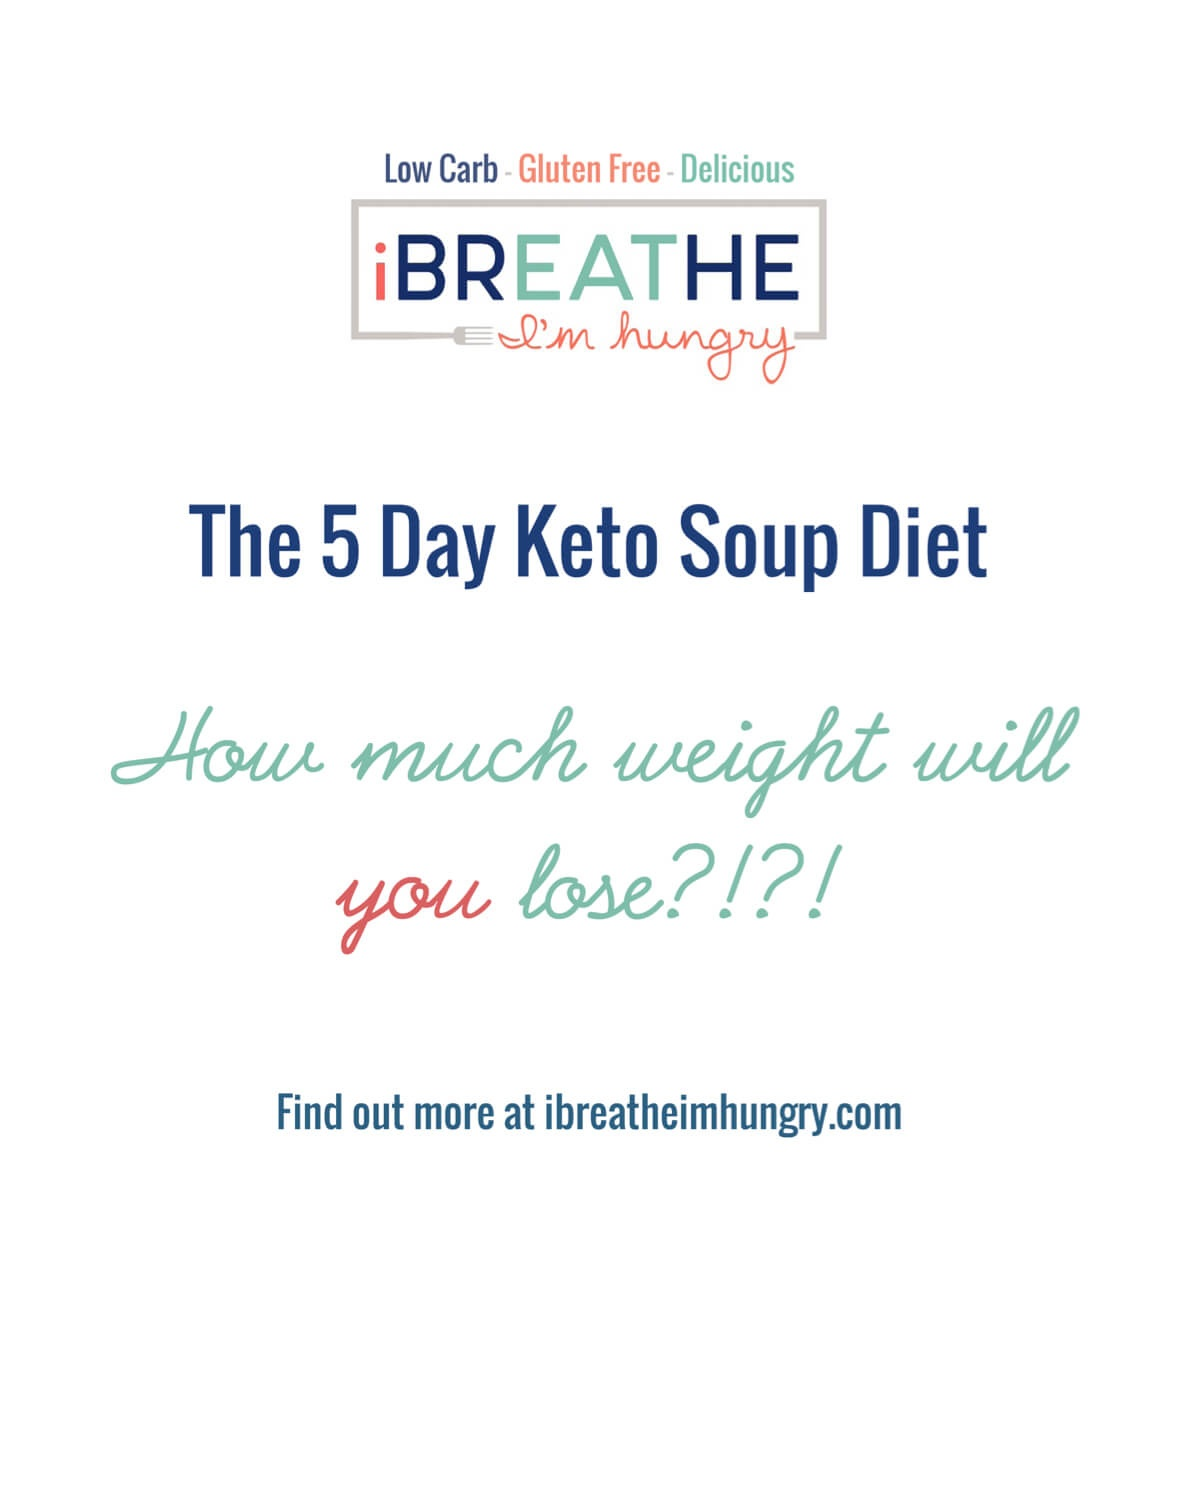 Ibih 5 Day Keto Soup Diet - Low Carb & Paleo | I Breathe I'm Hungry - Free Printable Atkins Diet Plan